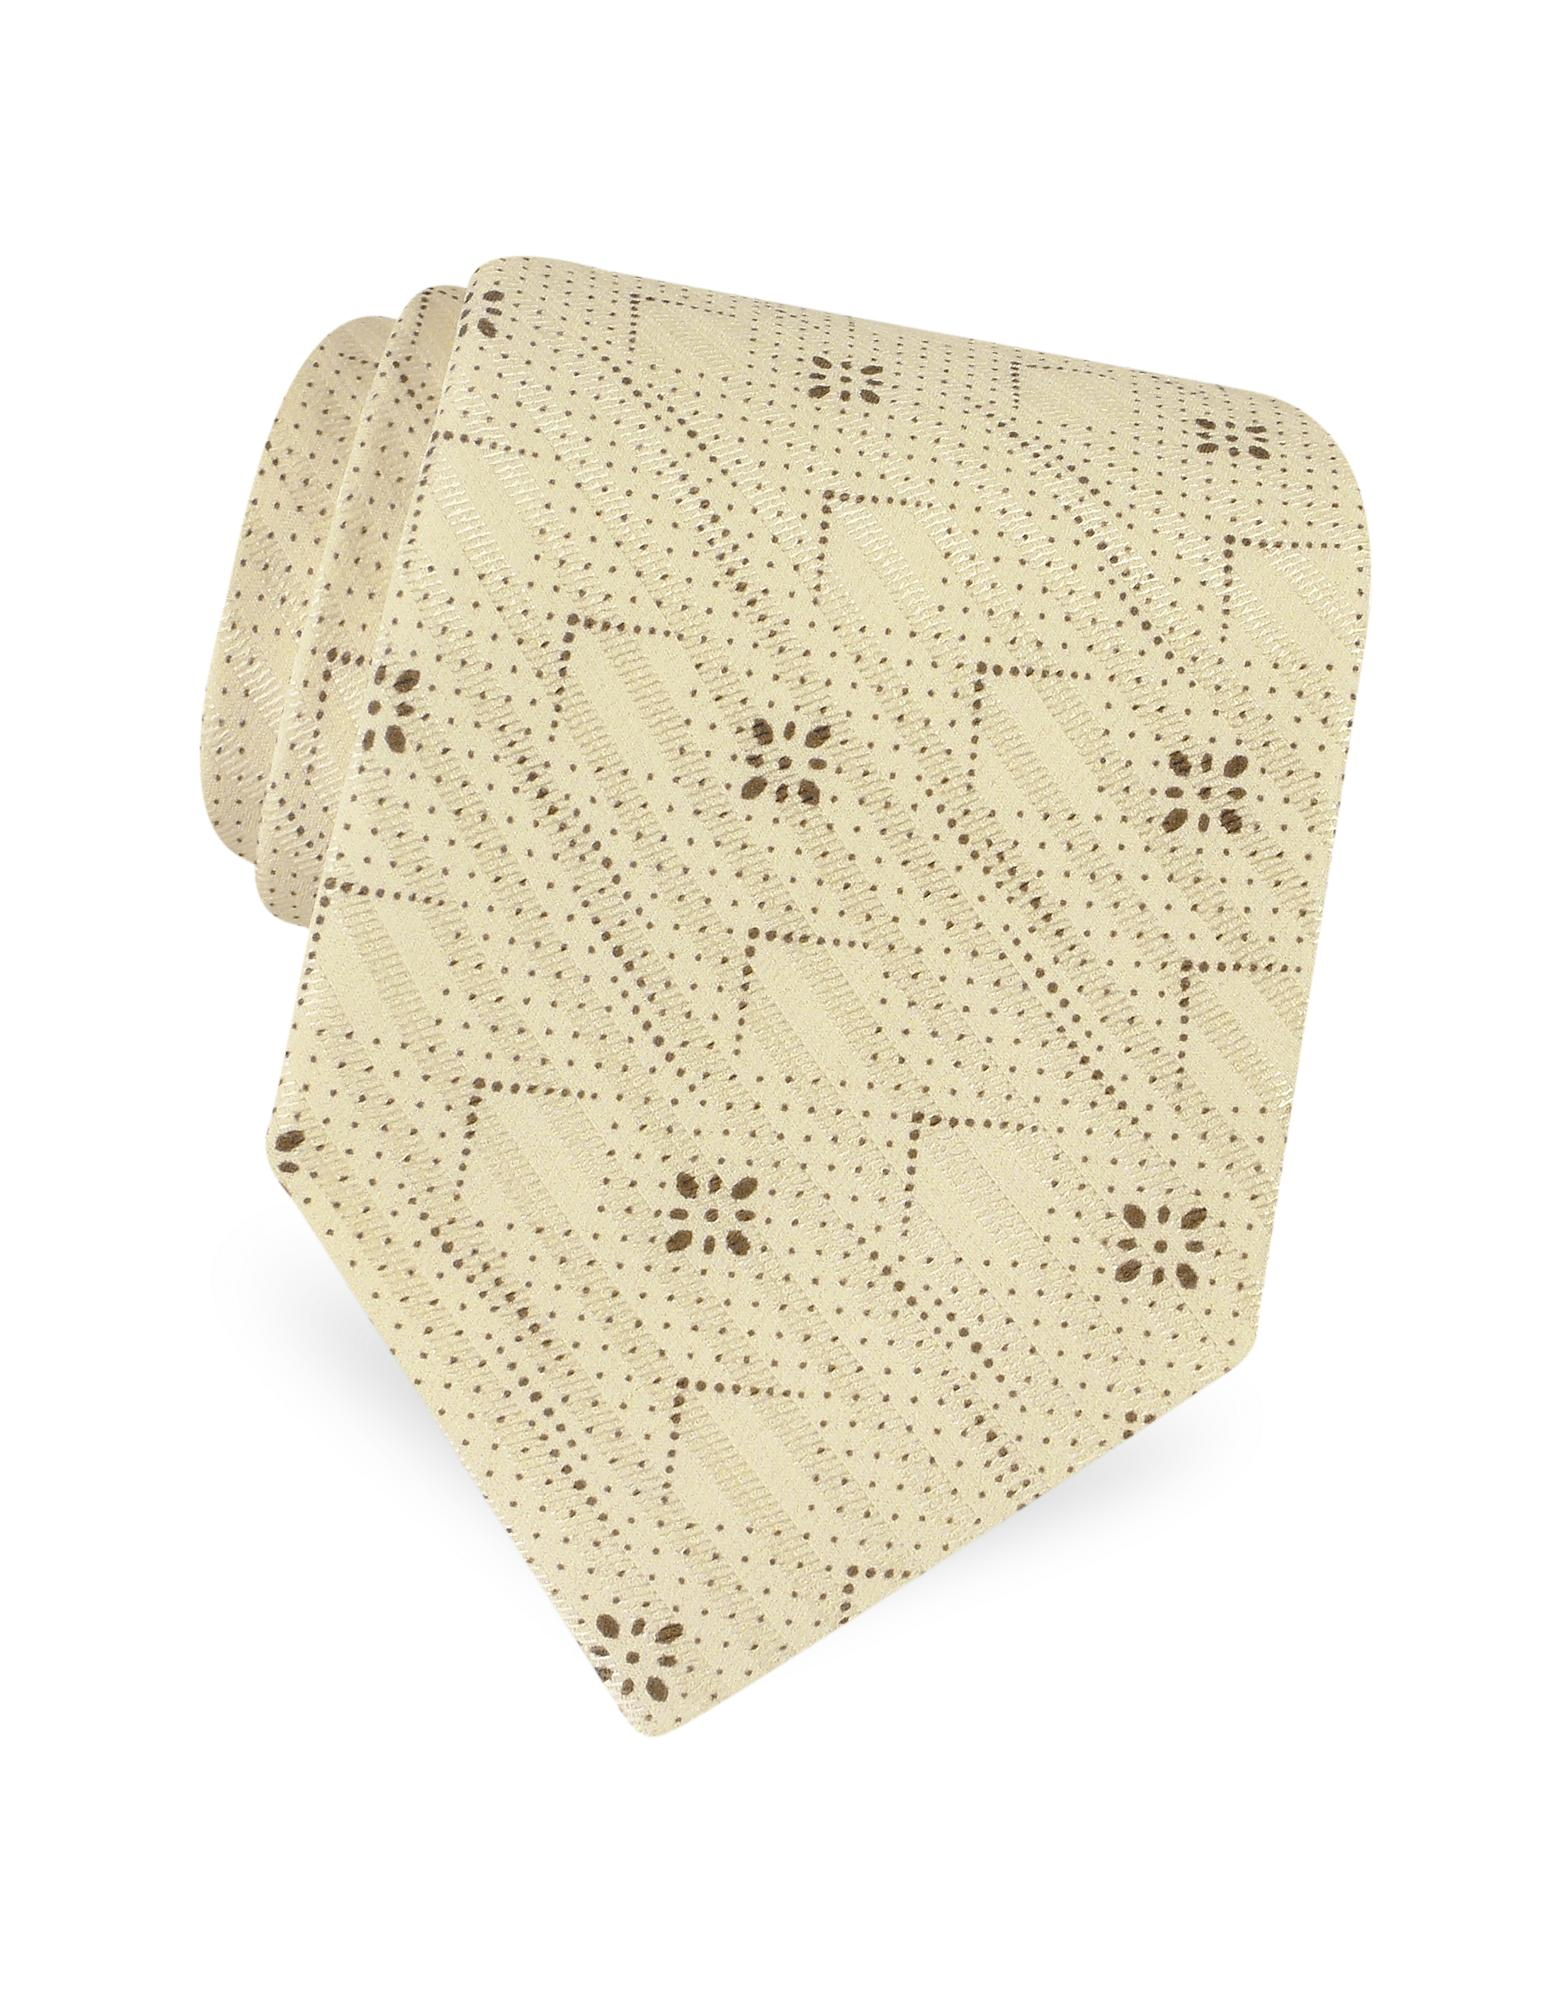 Giorgio Armani  Dotted Squares and Lines Woven Silk Tie